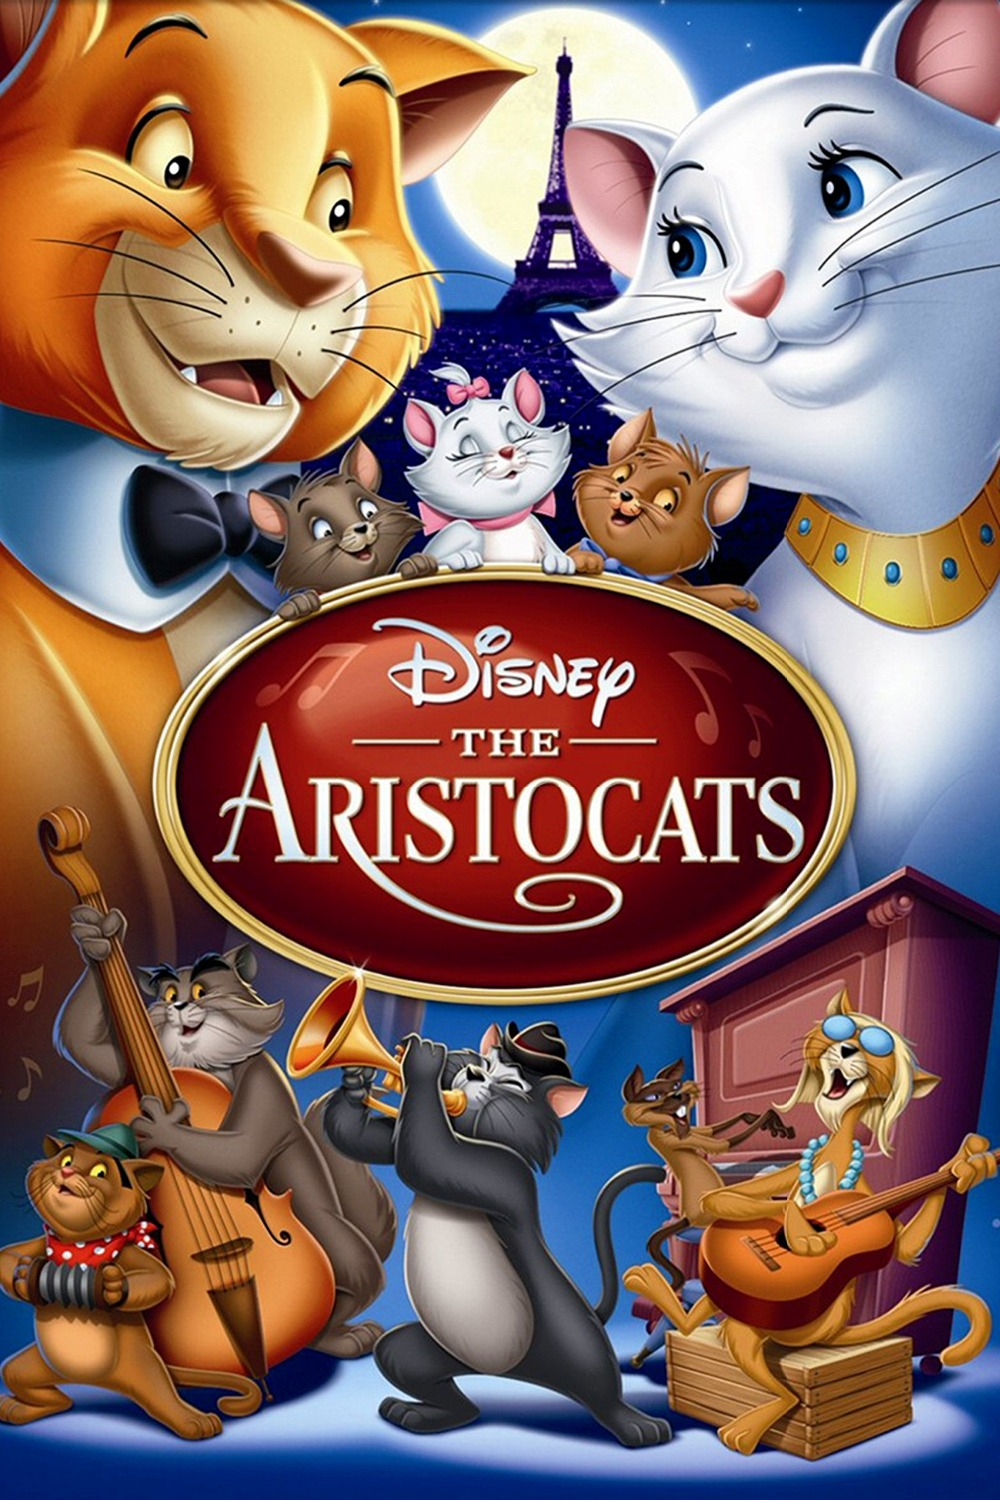 Free-shipping-The-Aristocats-1970-Movie-Poster-HD-HOME-WALL-Decor-Custom-ART-PRINT-Silk-Wallpaper.jpg